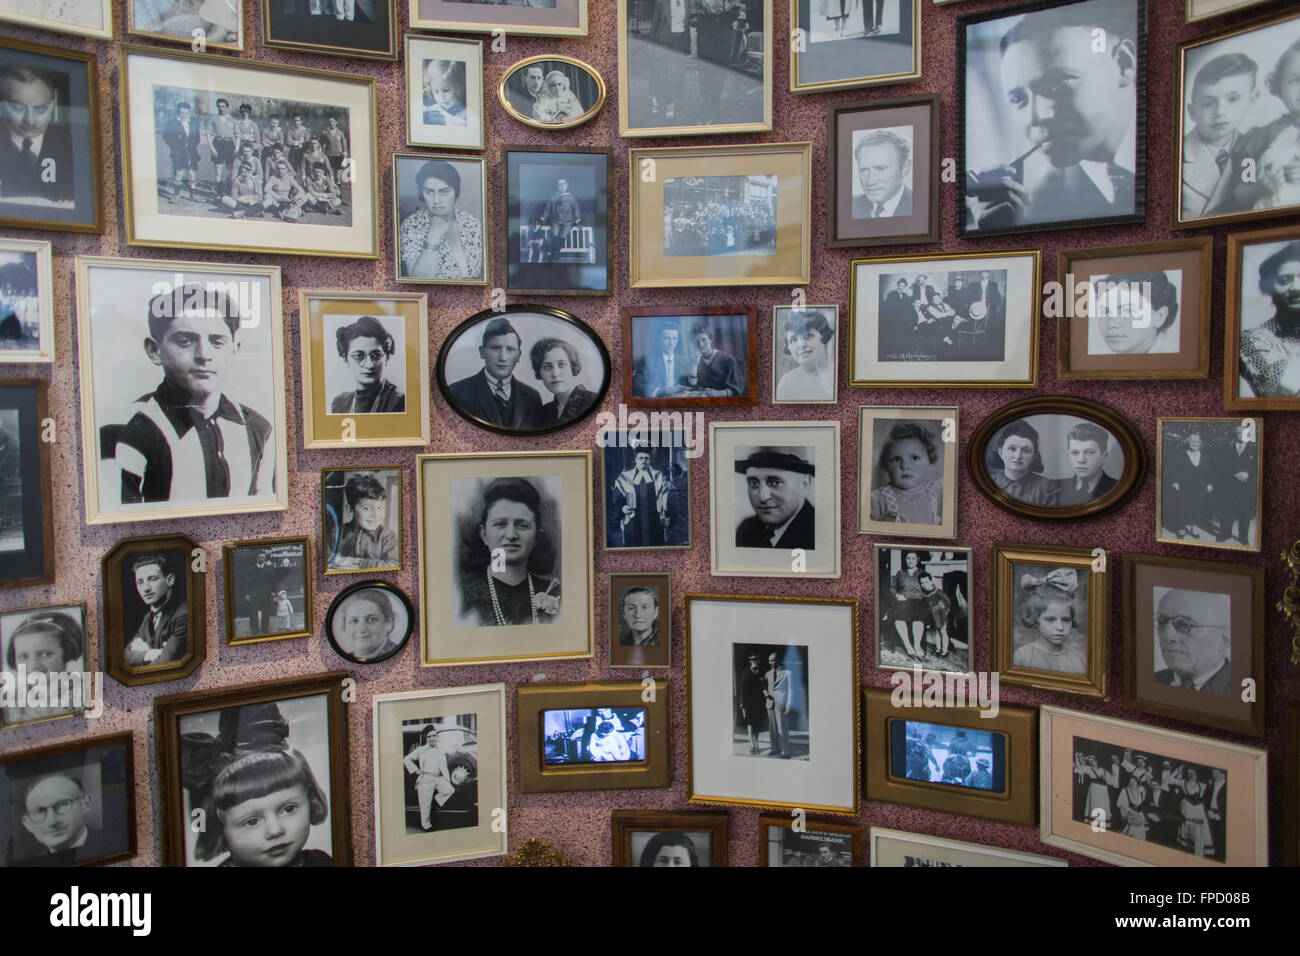 Memorial center Westerbork in Holland. More than one hundred thousand jews were deported from the Westerbork transit - Stock Image